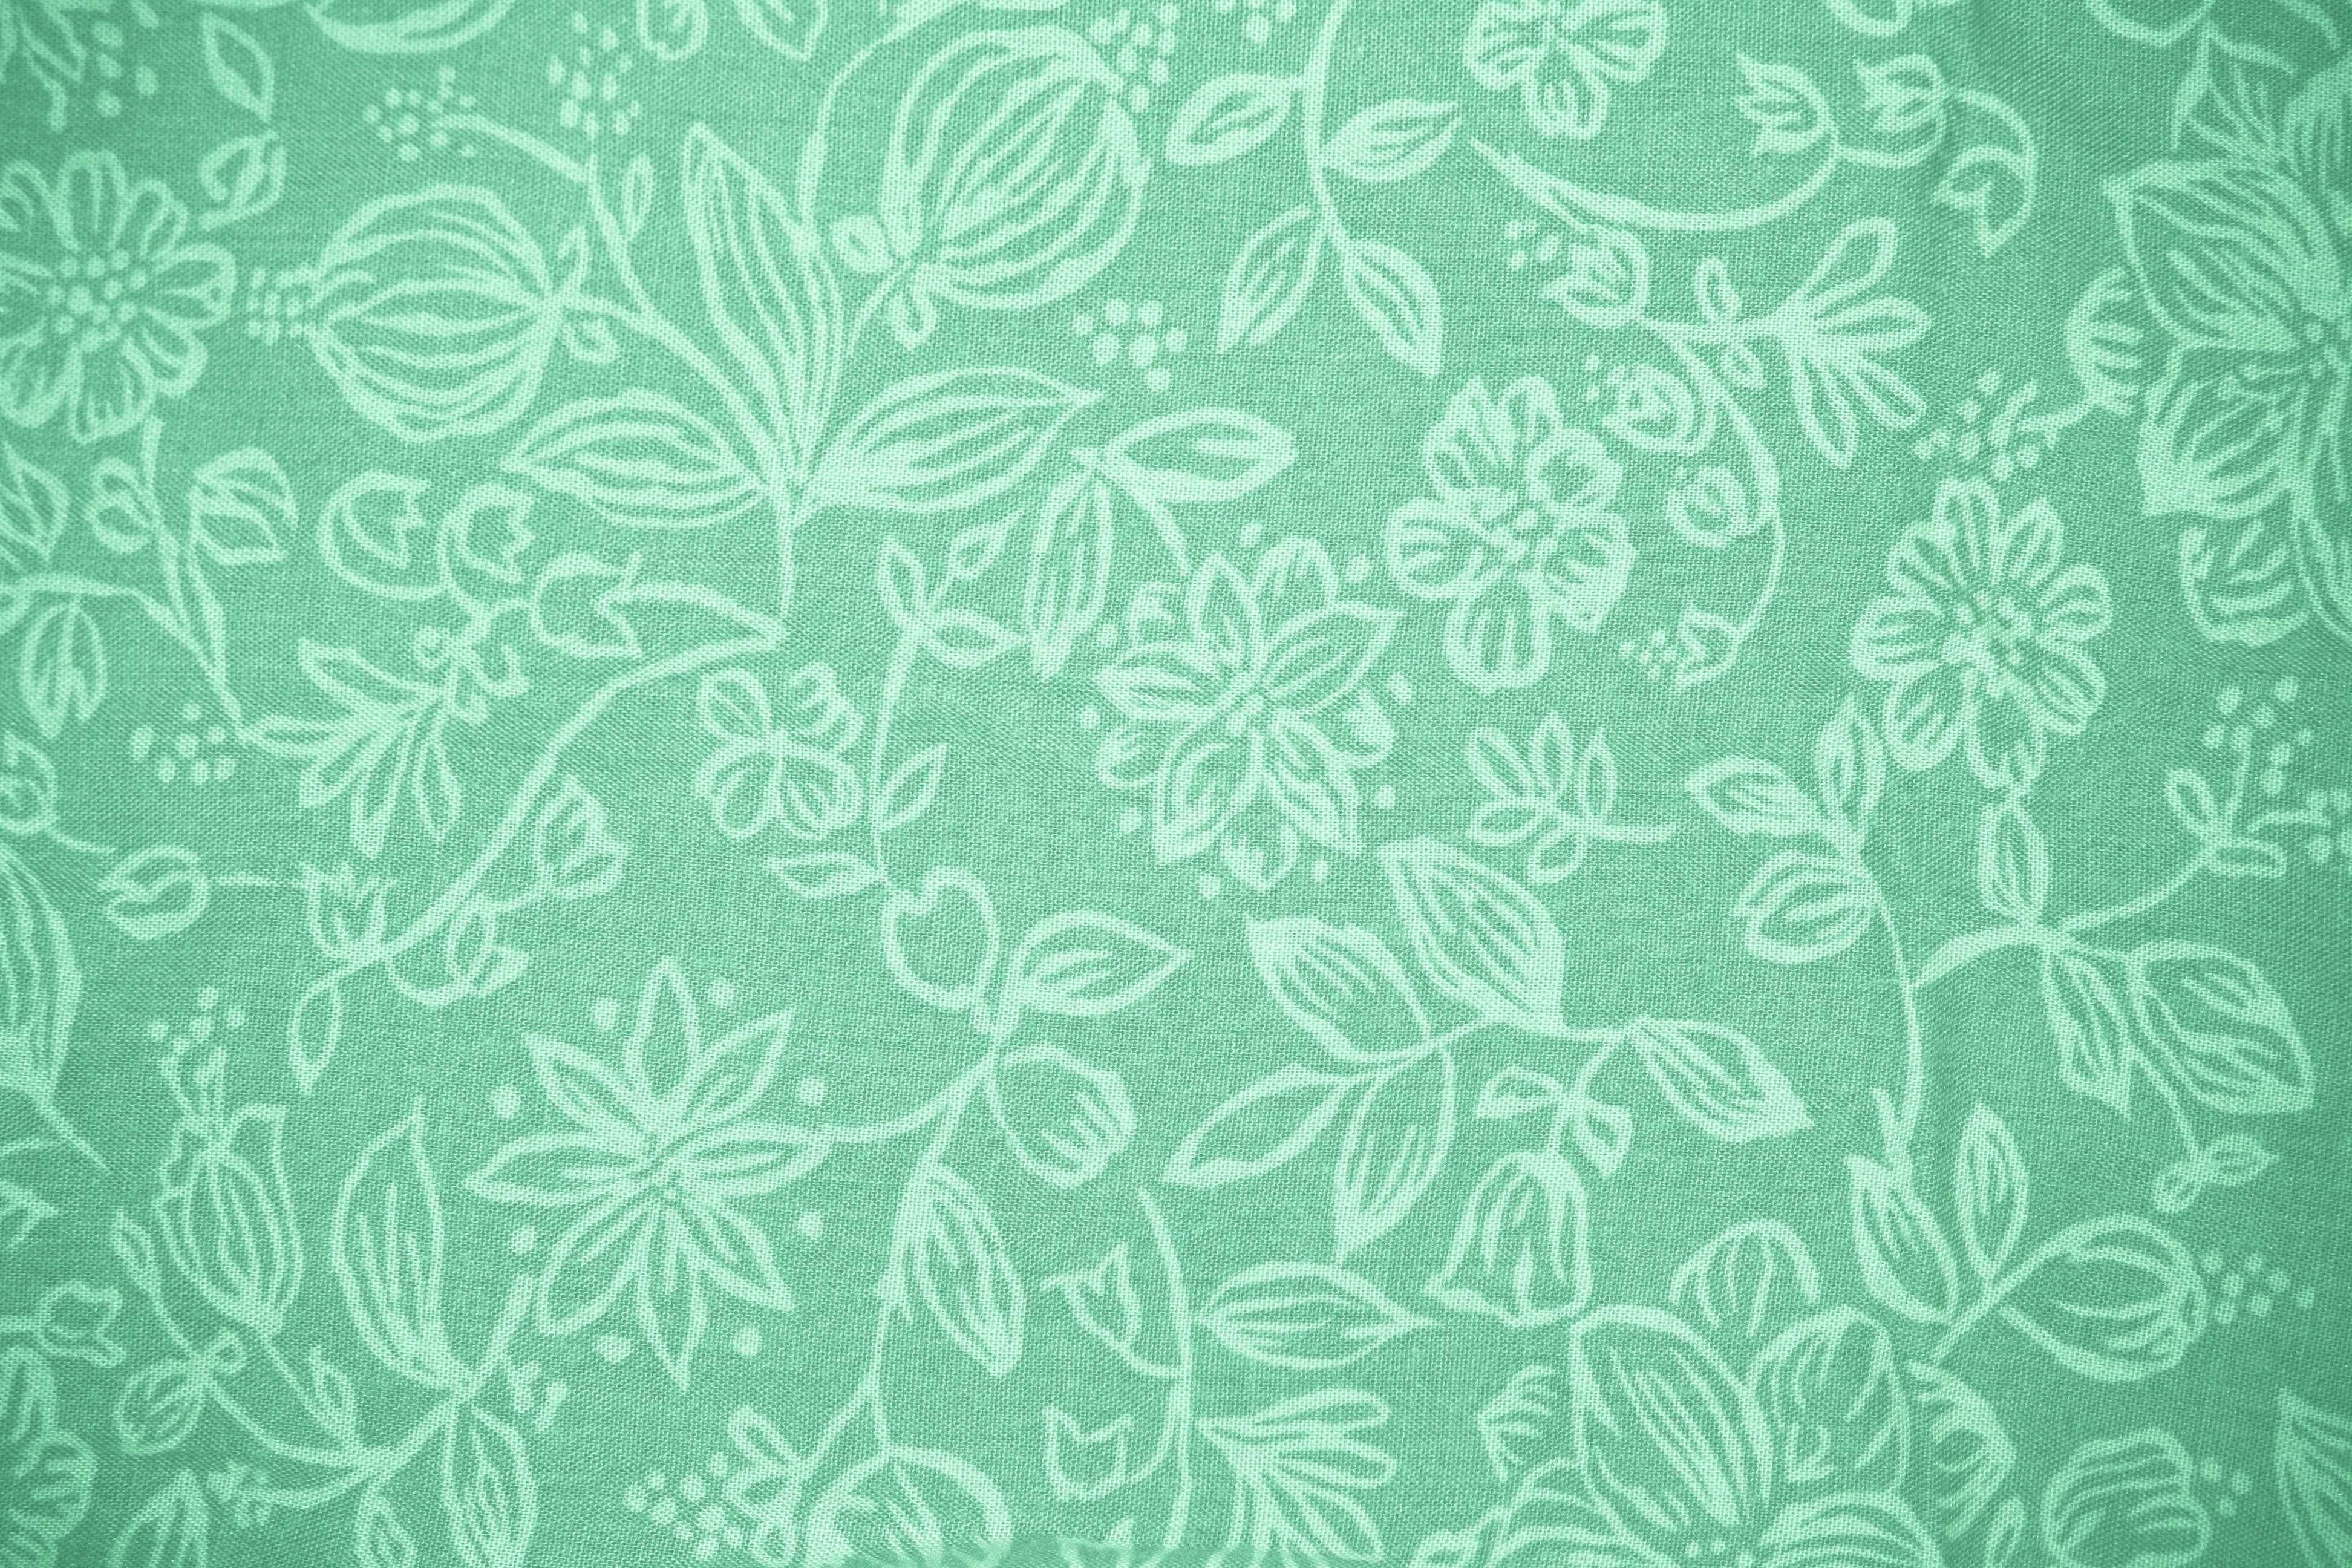 Vintage Mint Green Aesthetic Wallpaper